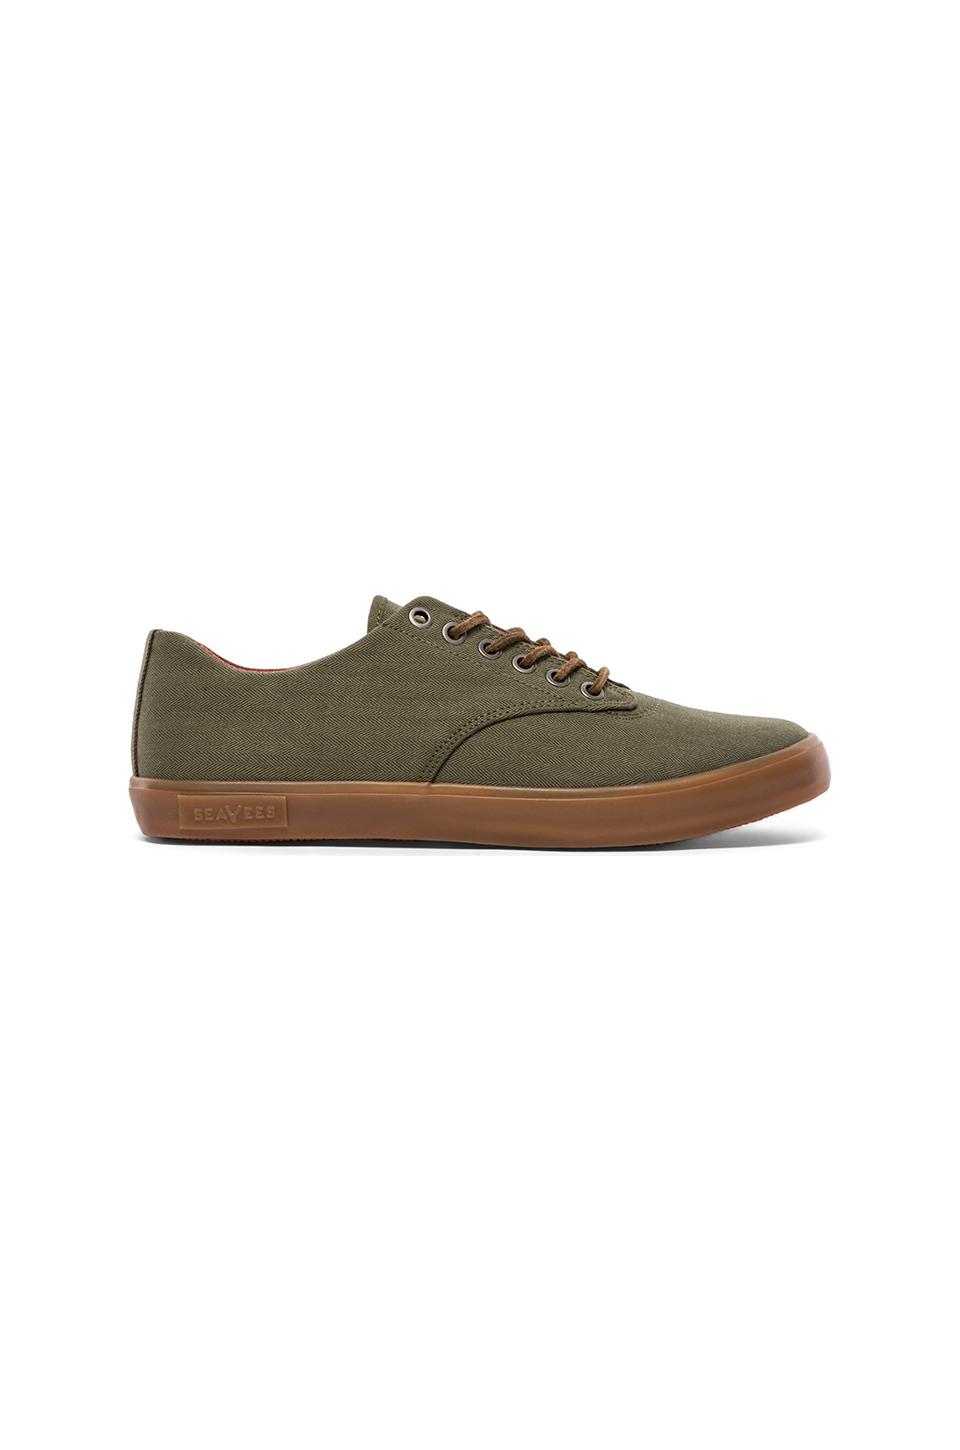 SeaVees 08/63 Hermosa Plimsoll Bocce in Military Olive Herrington Twill